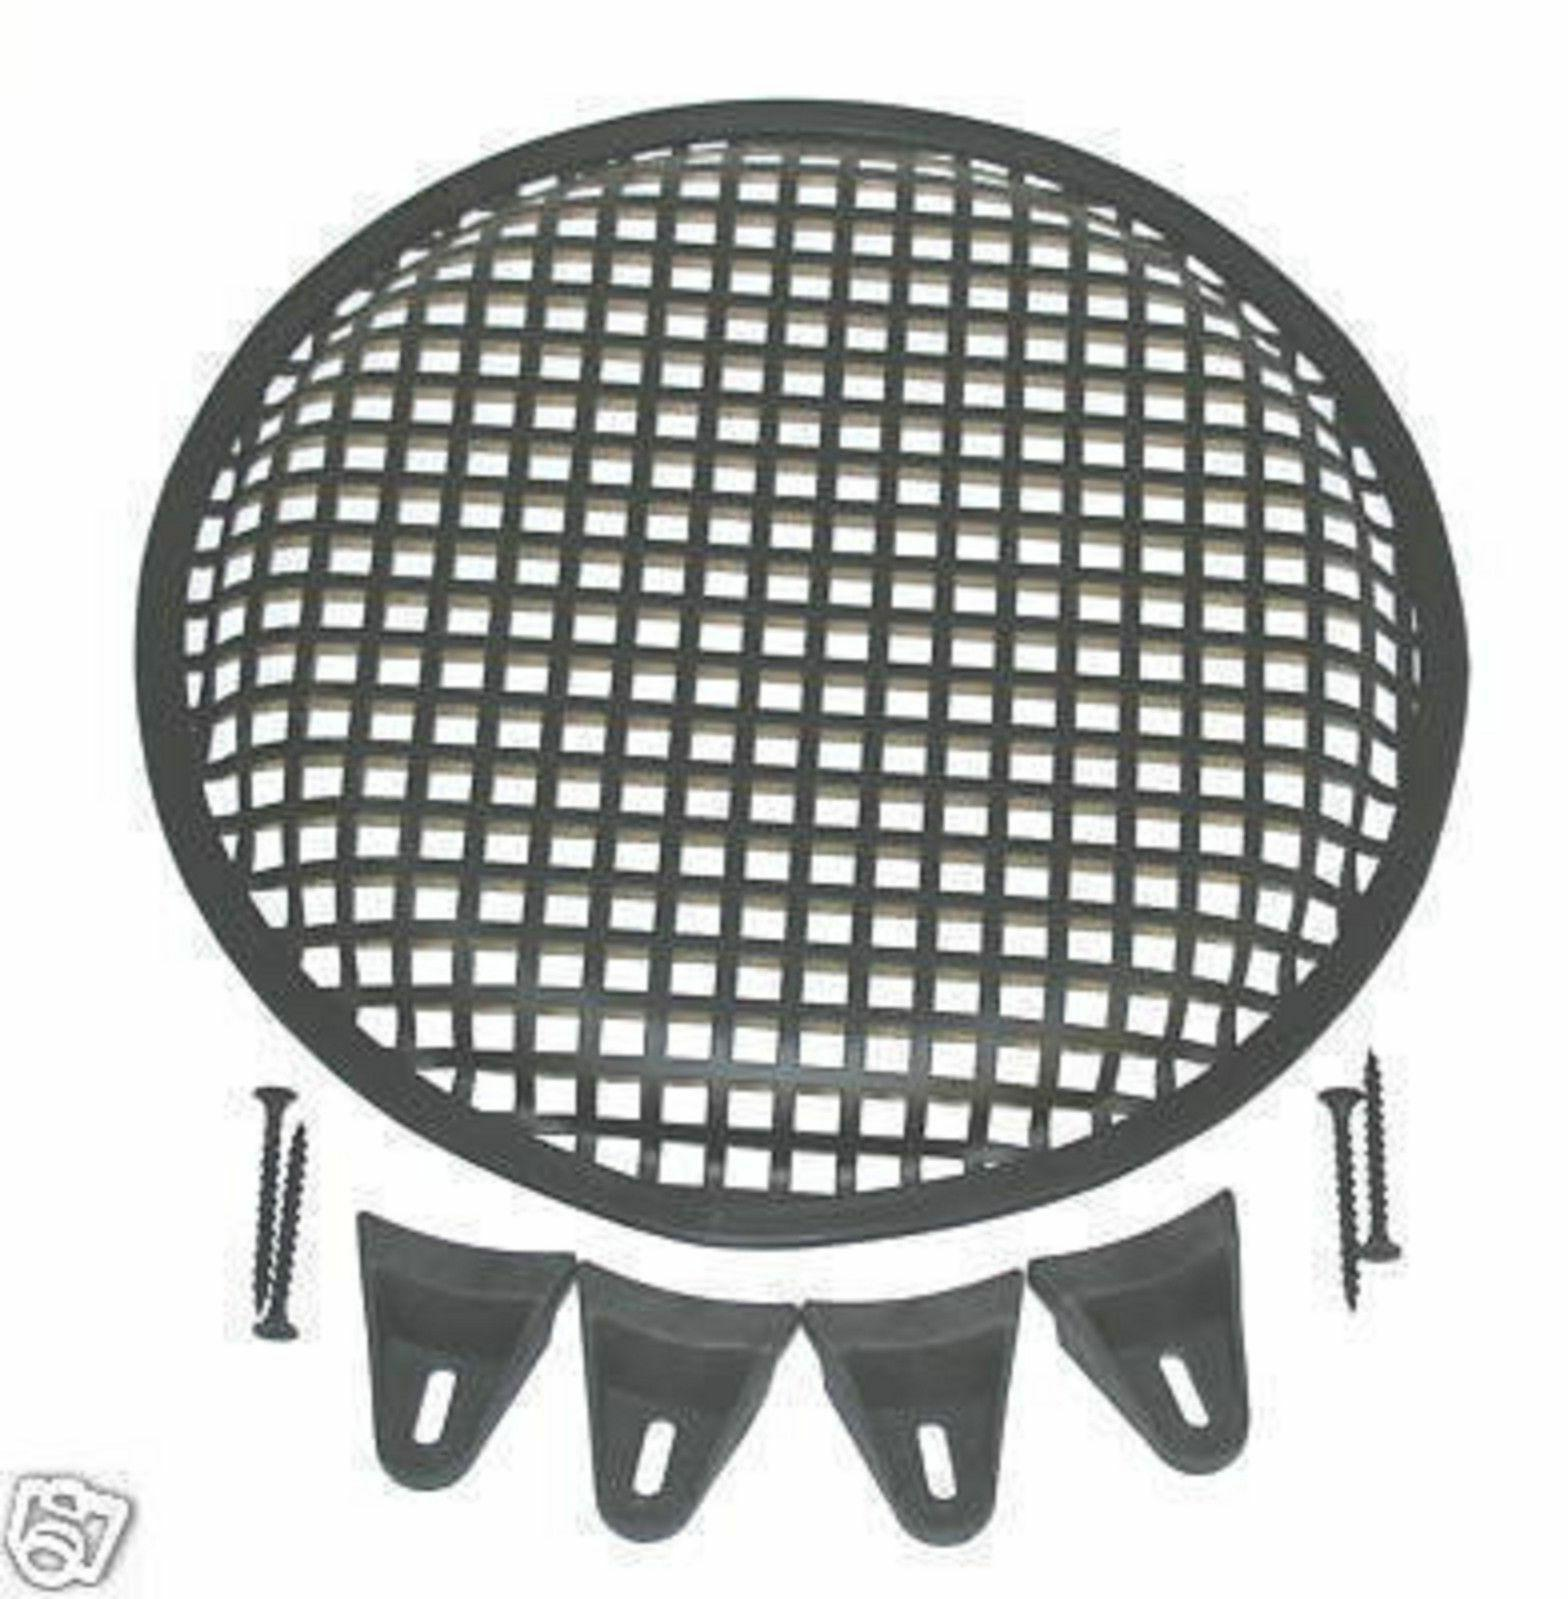 1 12 INCH STEEL SPEAKER SUB SUBWOOFER GRILL COVER W/CLIPS SC